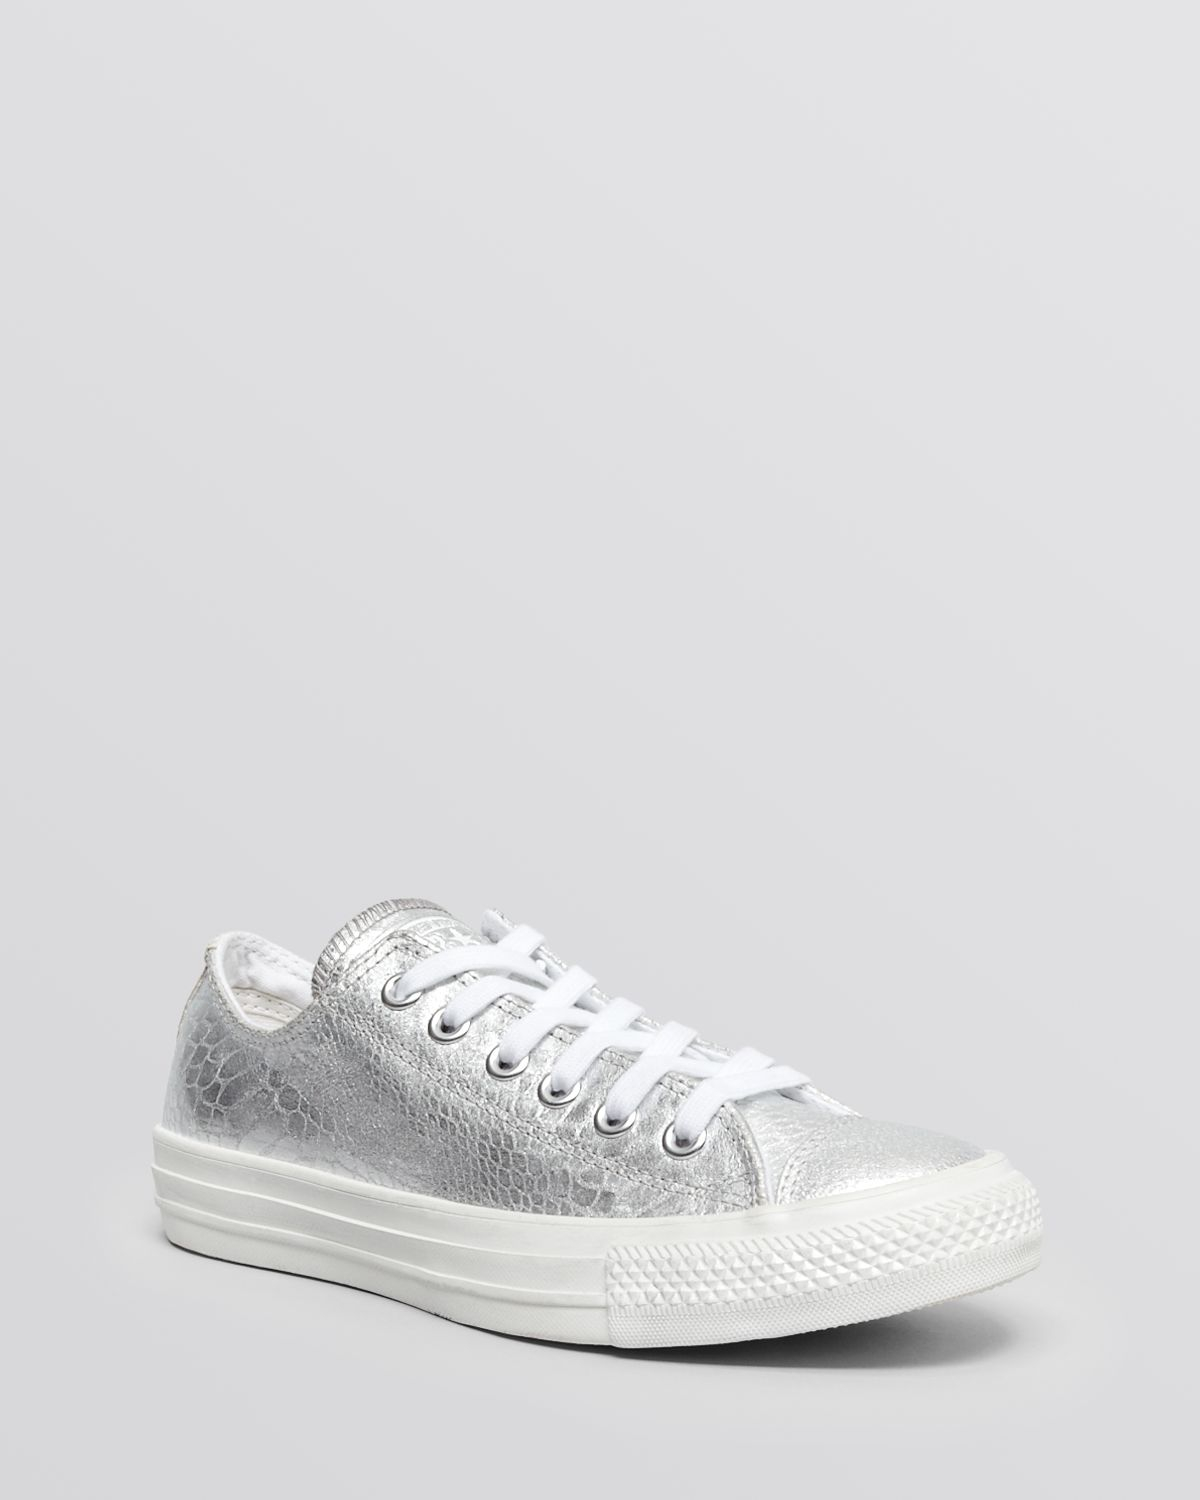 7fa979045832 Gallery. Previously sold at  Bloomingdale s · Women s Converse Chuck Taylor  ...